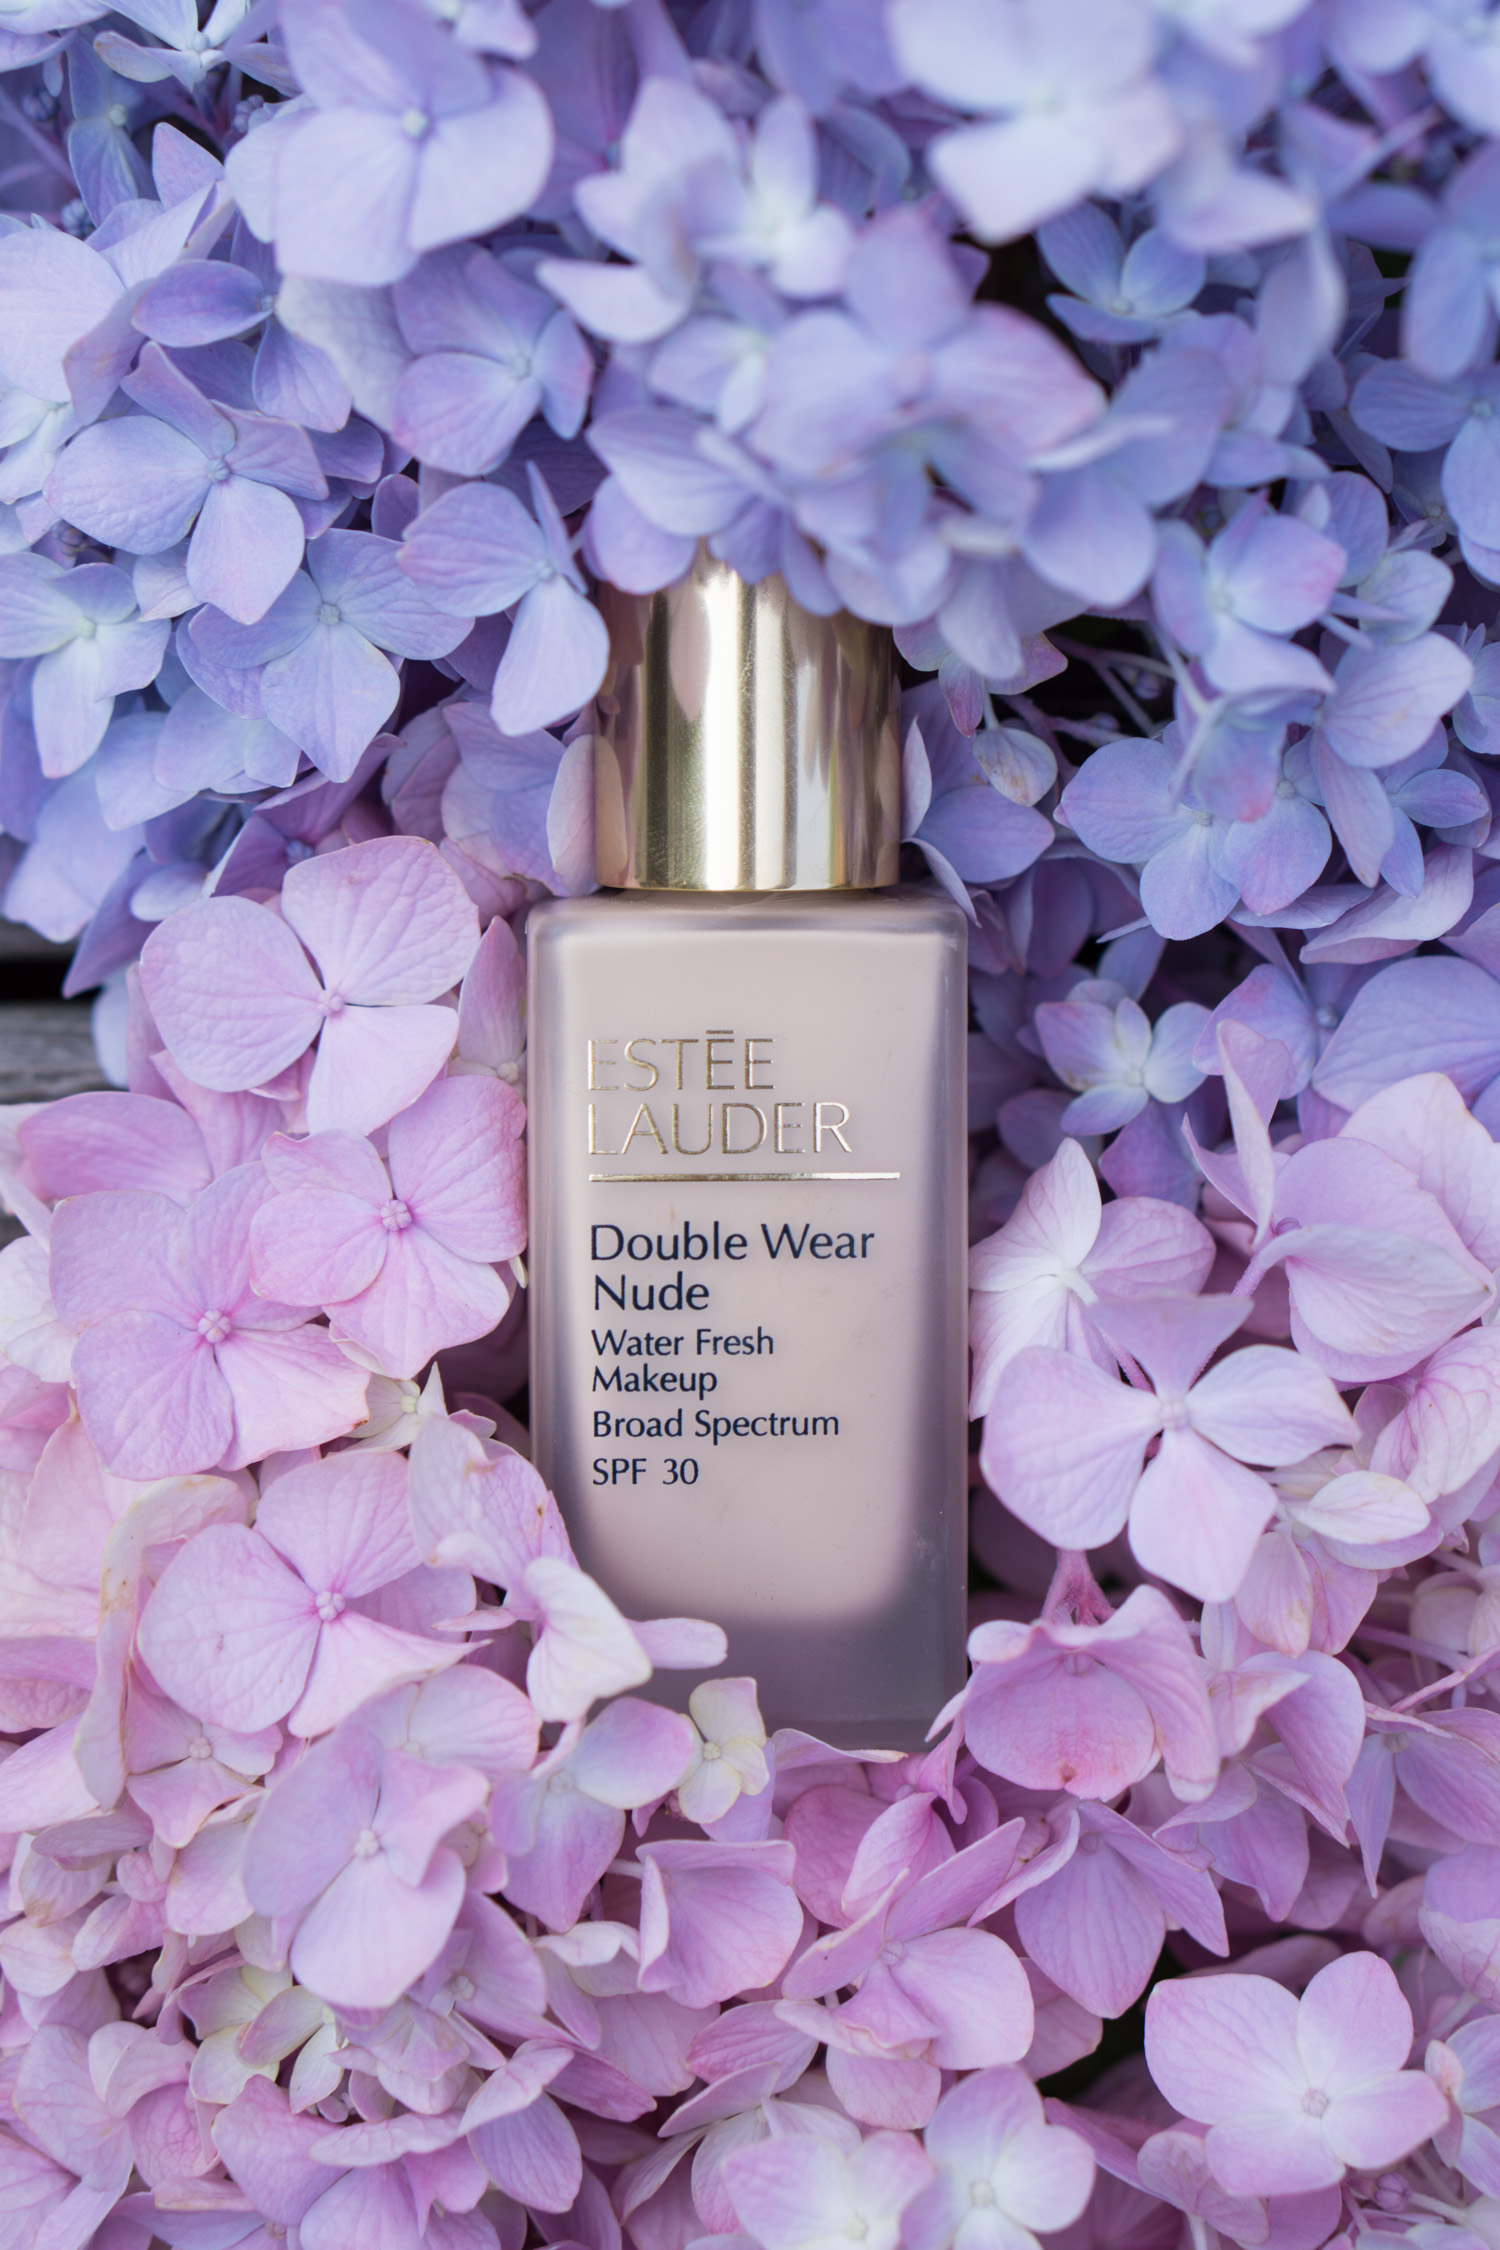 Estee Lauder Double Wear Nude Water Fresh Makeup Foundation Review